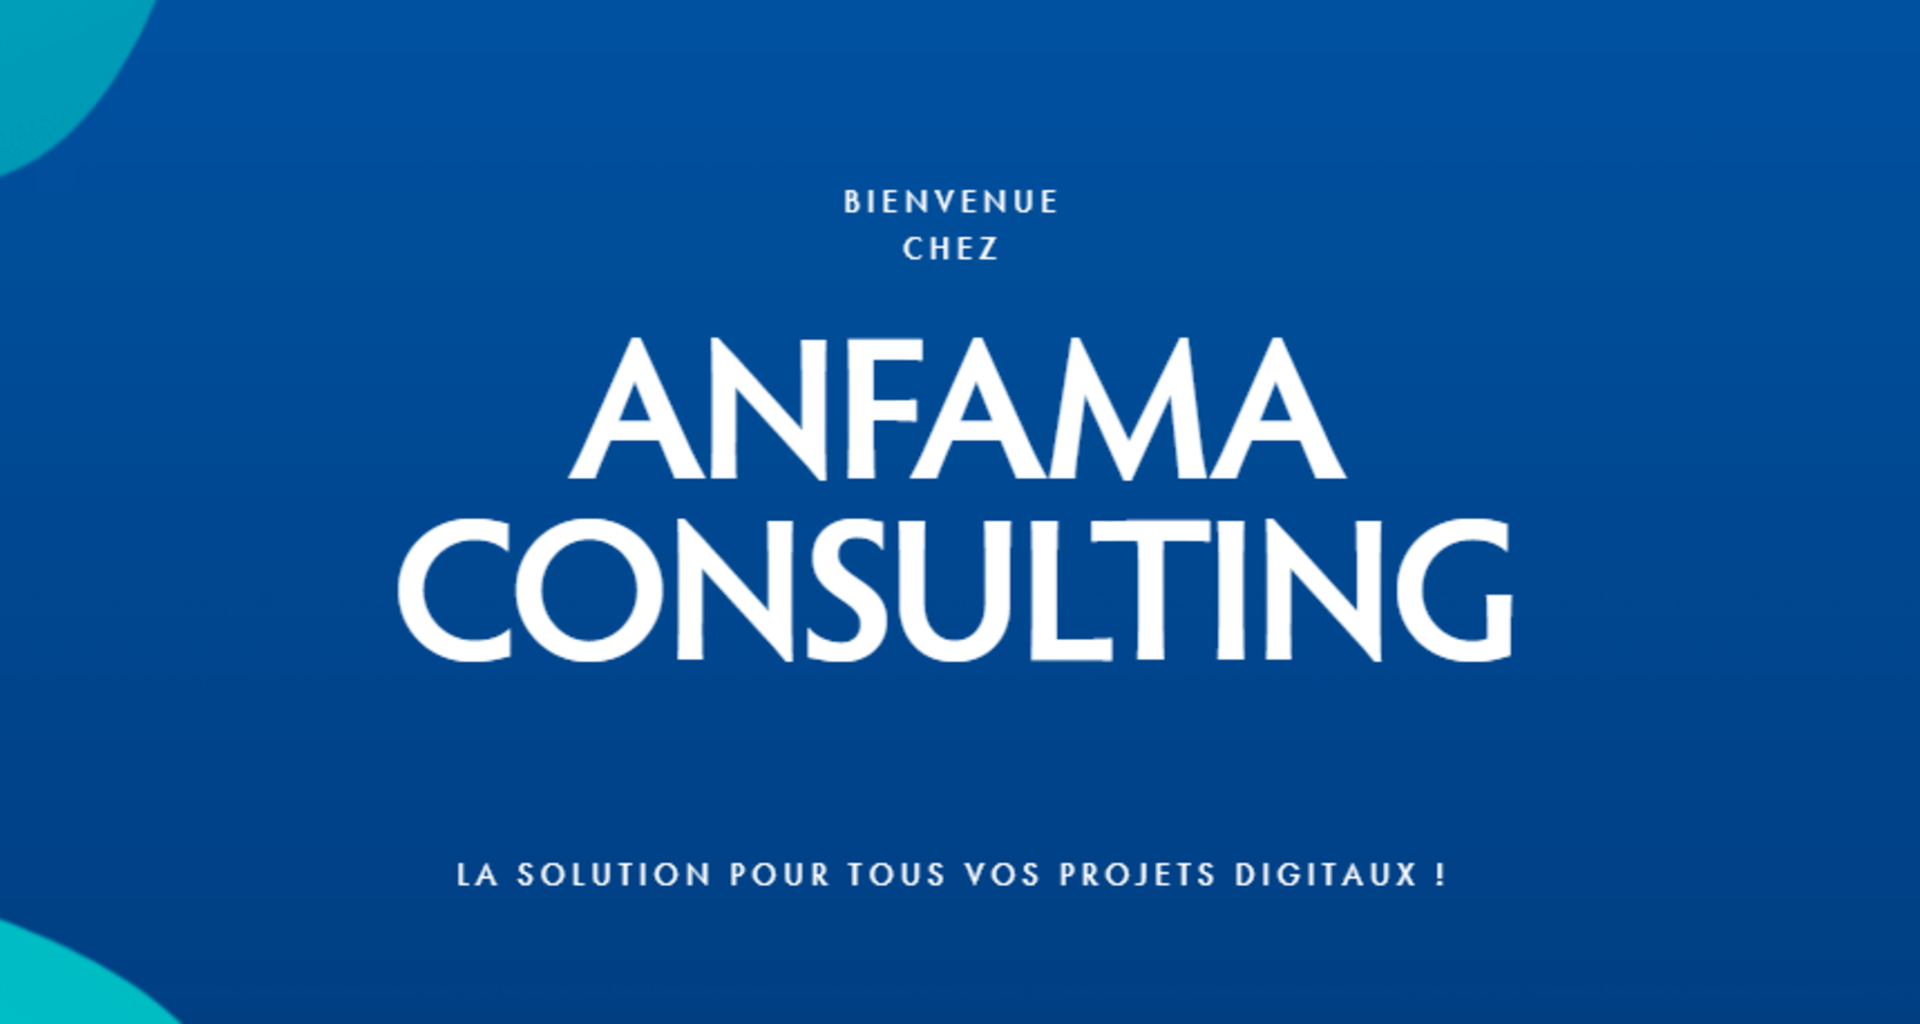 ANFAMA CONSULTING